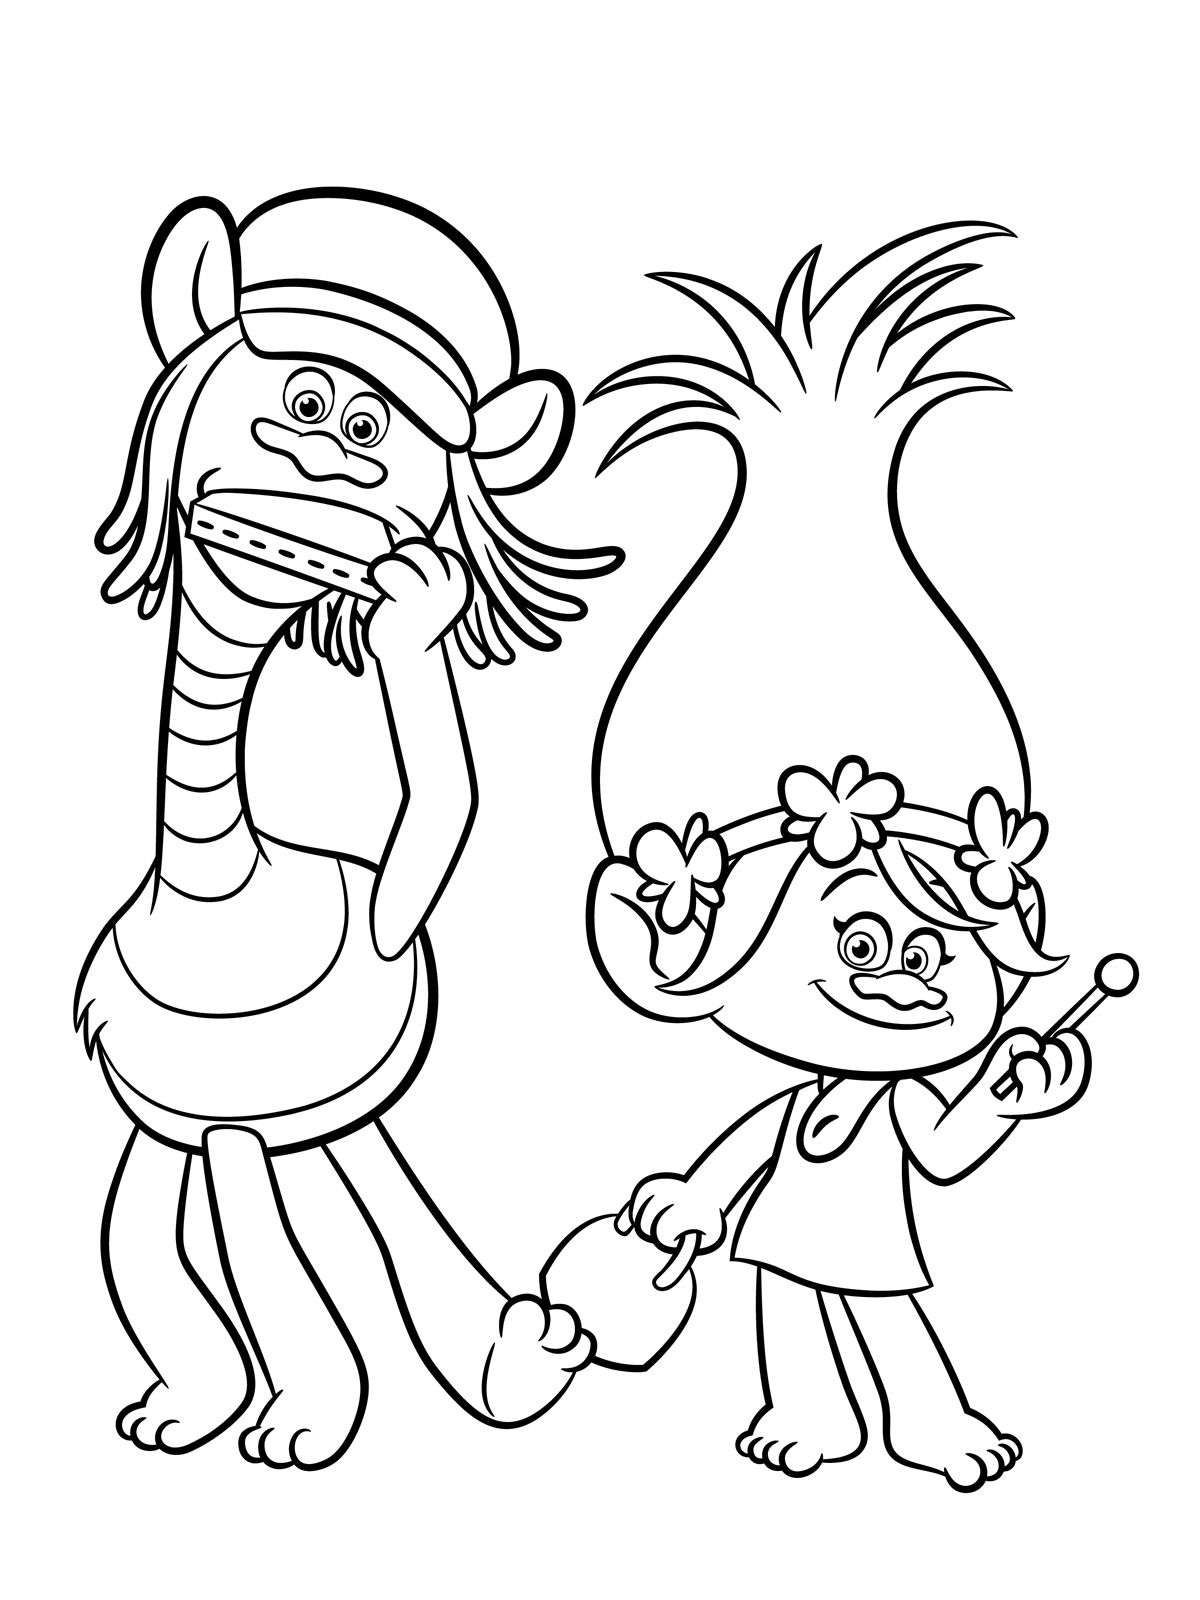 kids drawings for colouring minion coloring pages best coloring pages for kids for kids drawings colouring